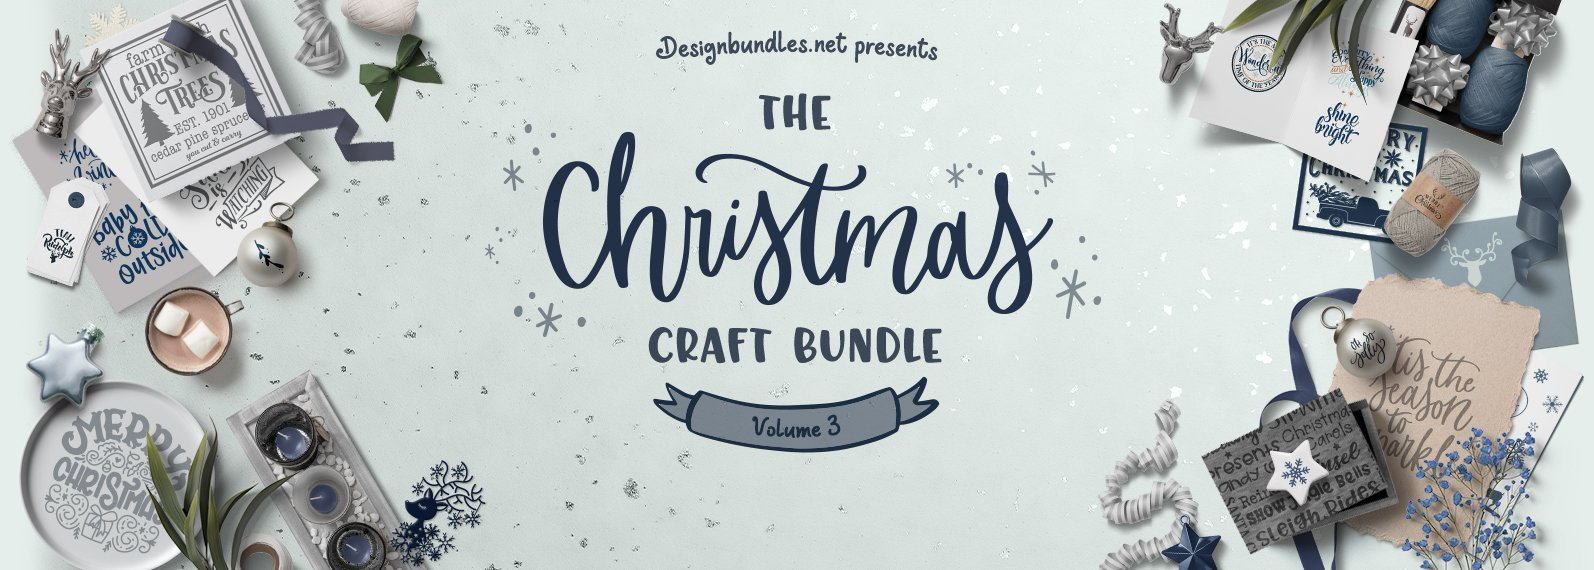 The Christmas Craft Bundle III Cover